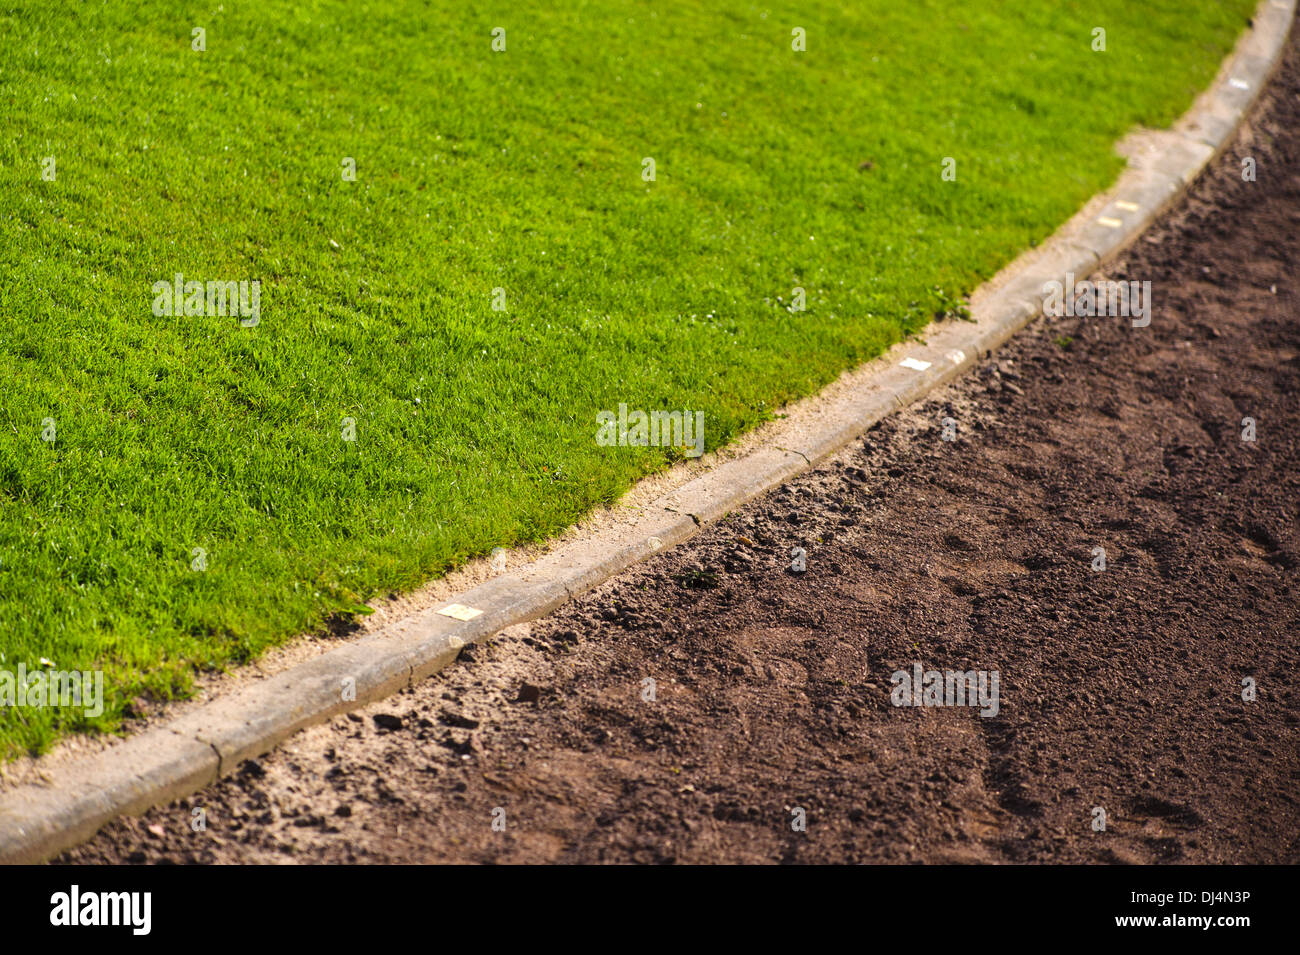 Curve of a pitch with grass and sand track - Stock Image